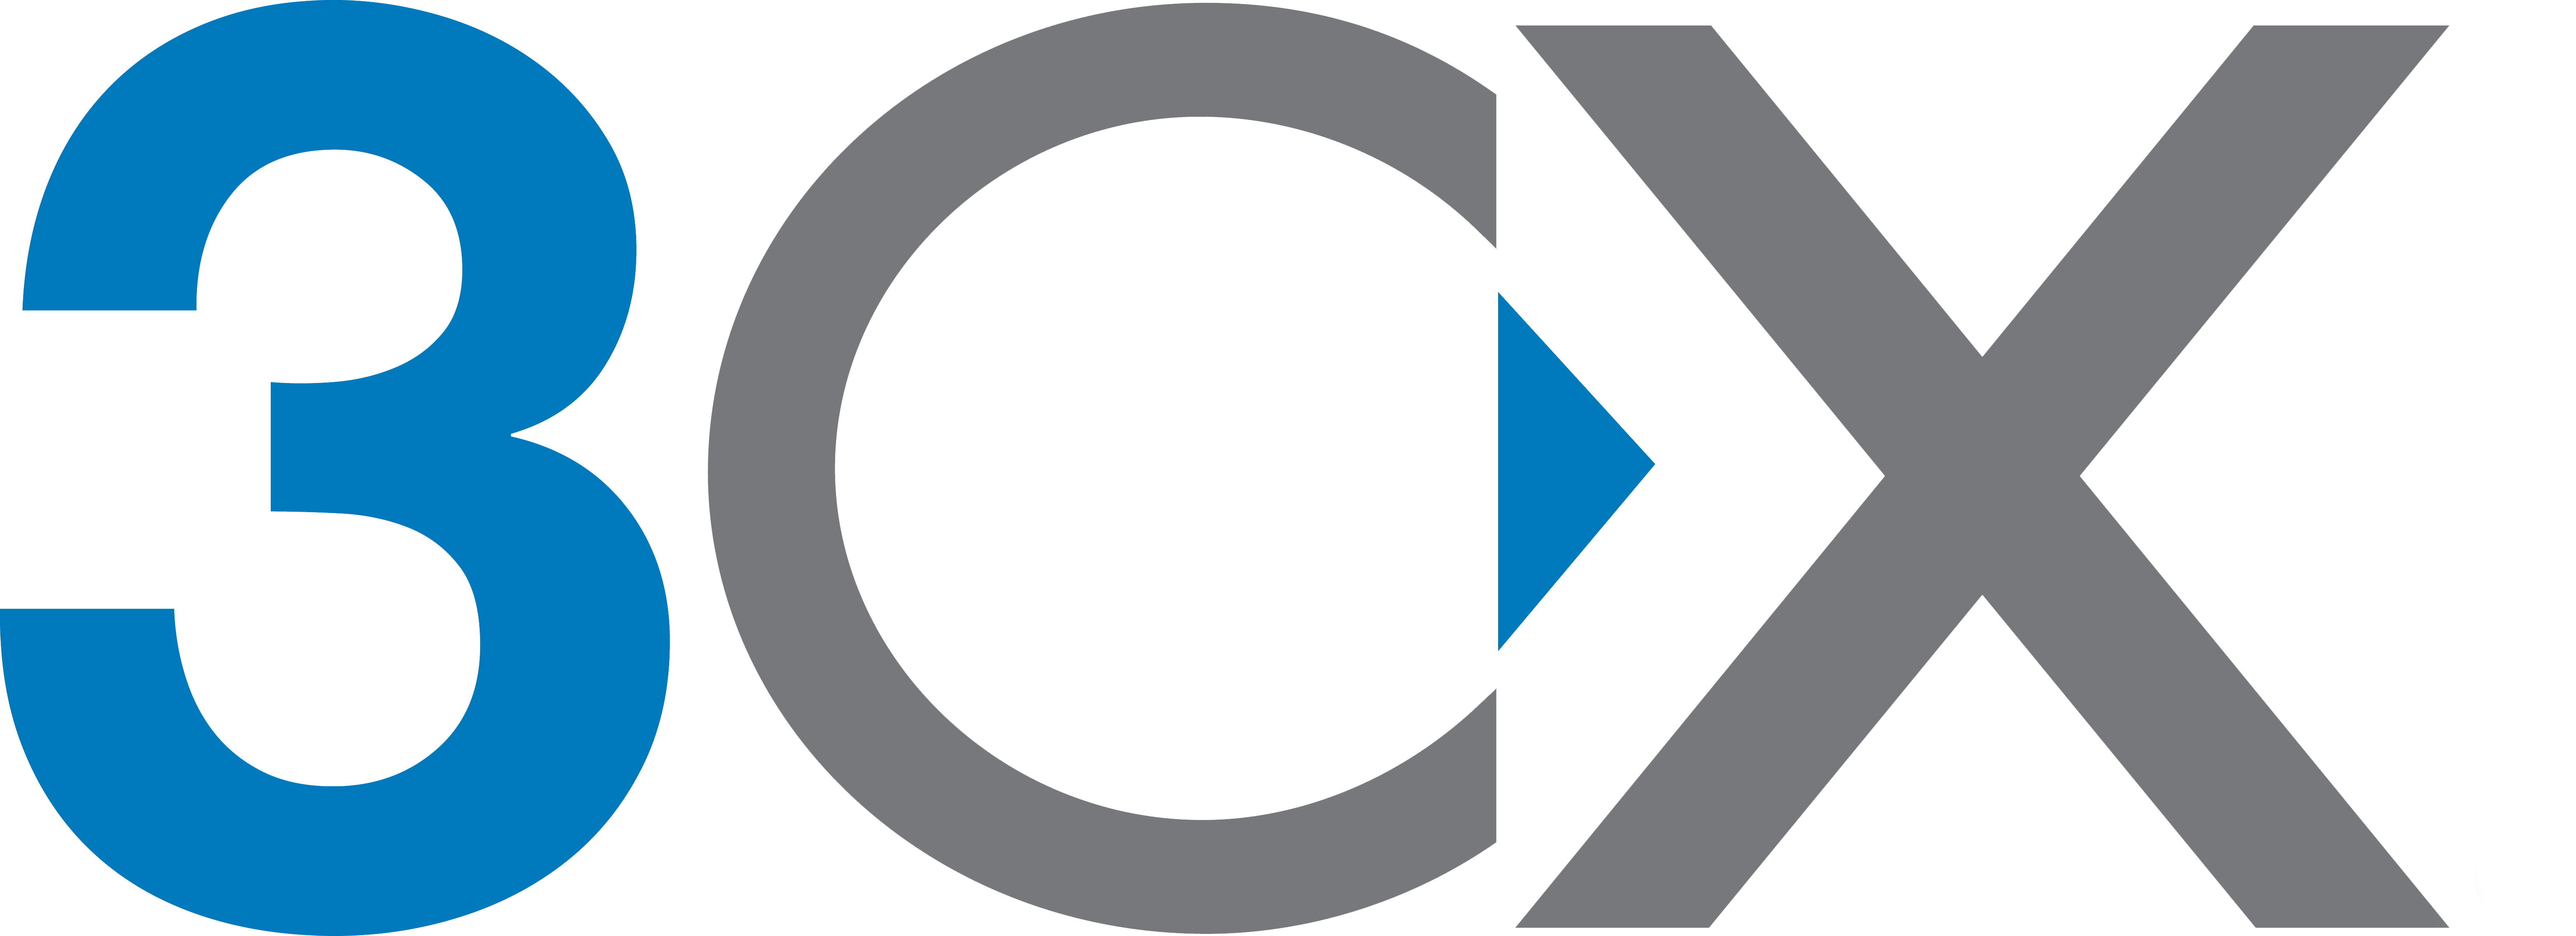 3CX-Logo-High-Resolution